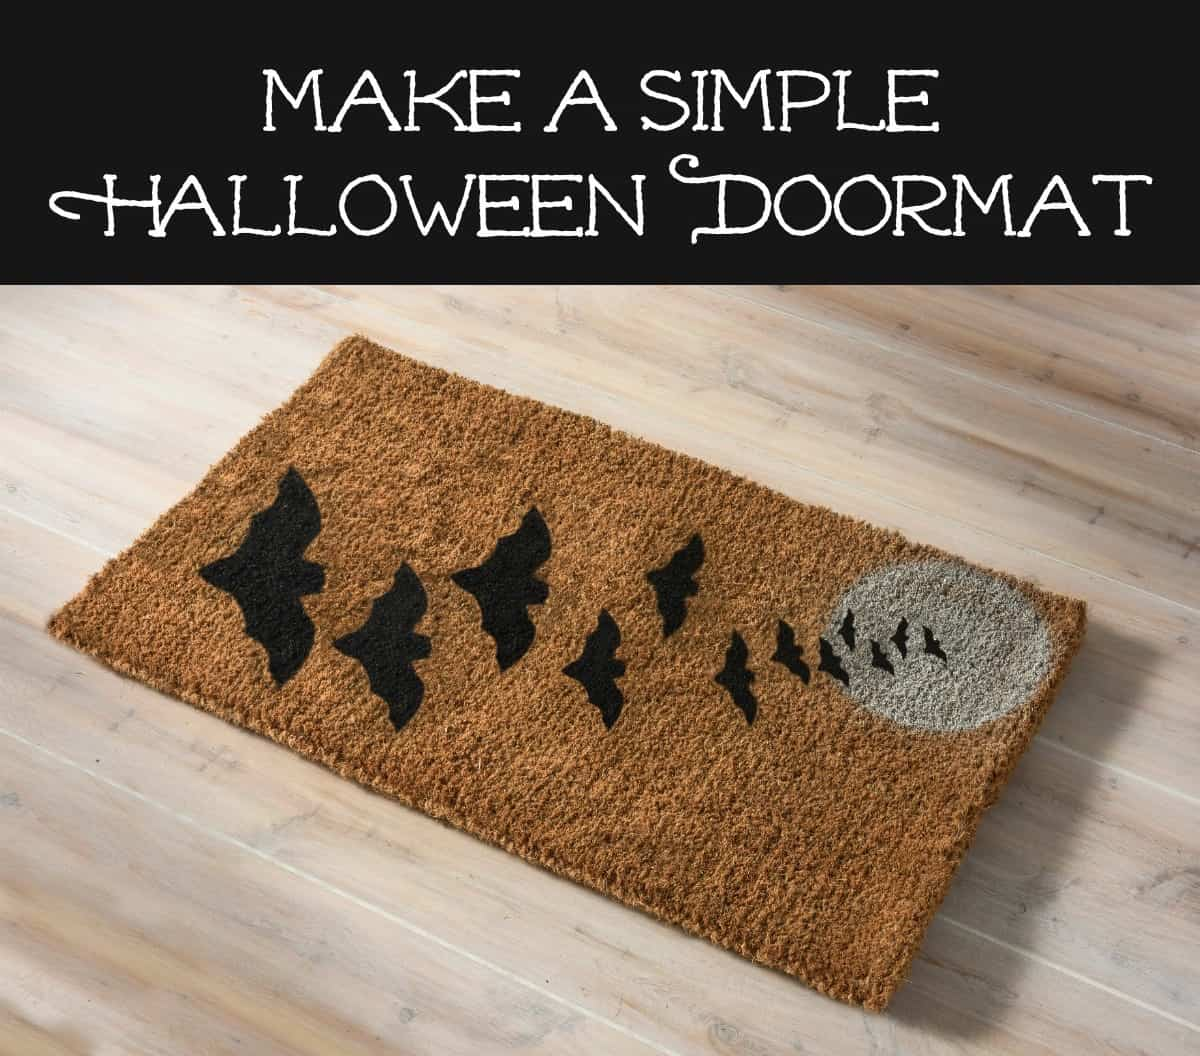 make a simple halloween doormat with spray paint - diy candy